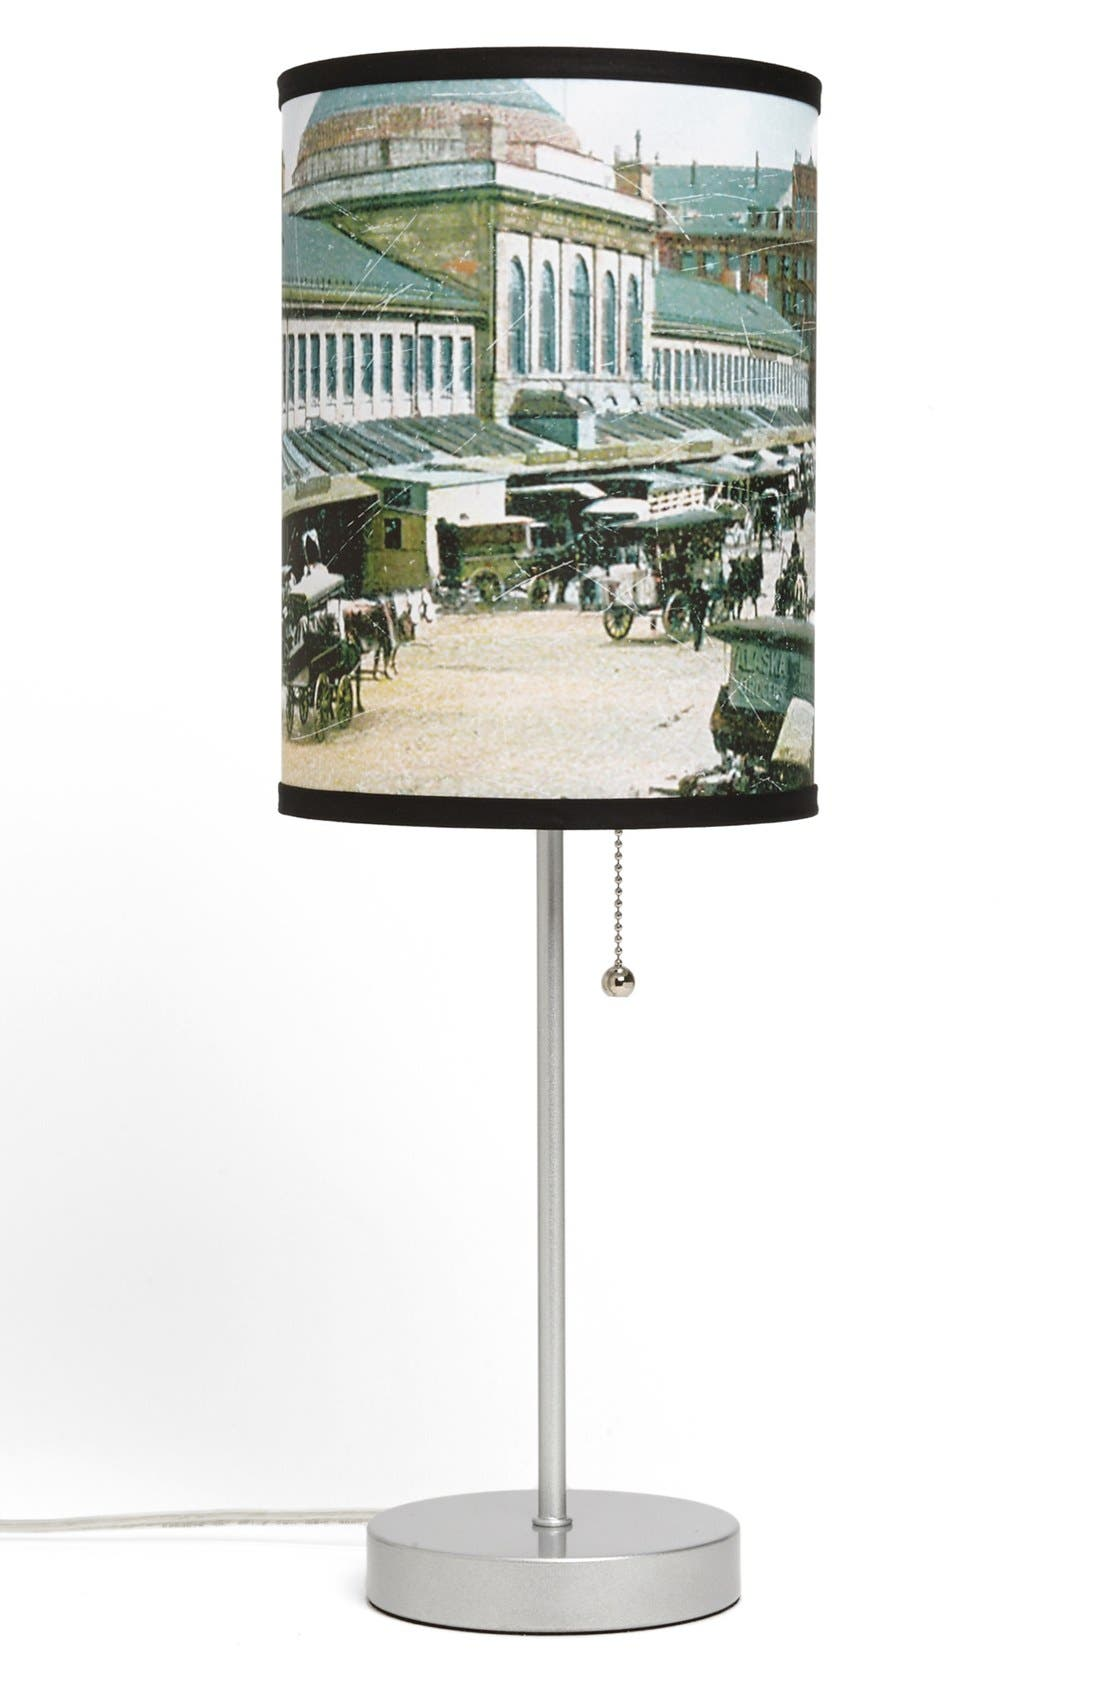 Alternate Image 1 Selected - LAMP-IN-A-BOX 'Boston Market District' Postcard Print Lamp